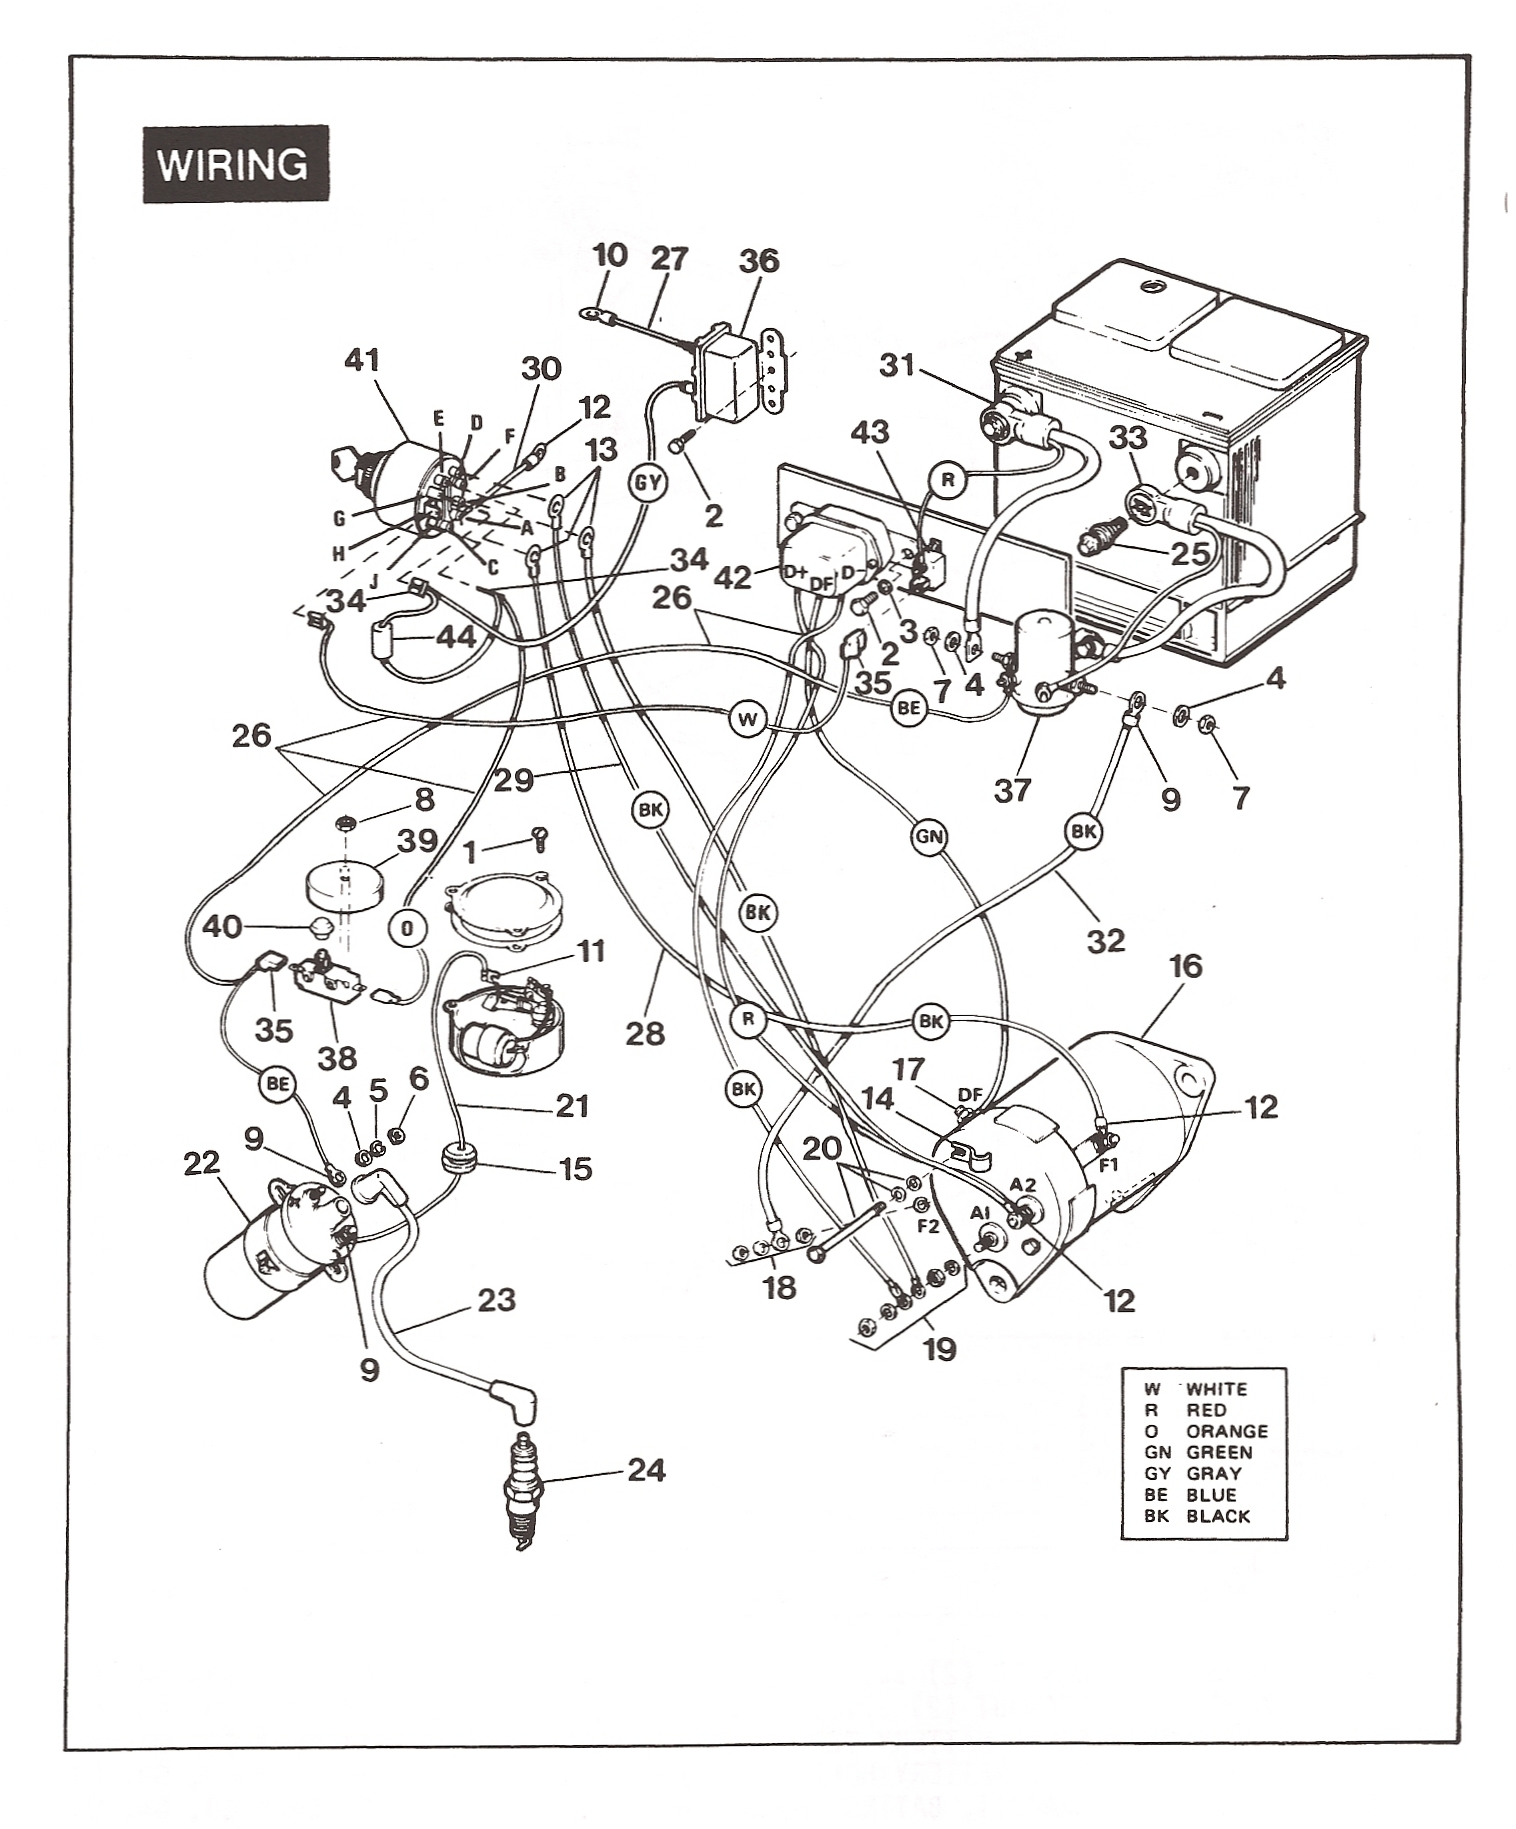 Harley Davidson Golf C Engine Diagram, Harley, Free Engine